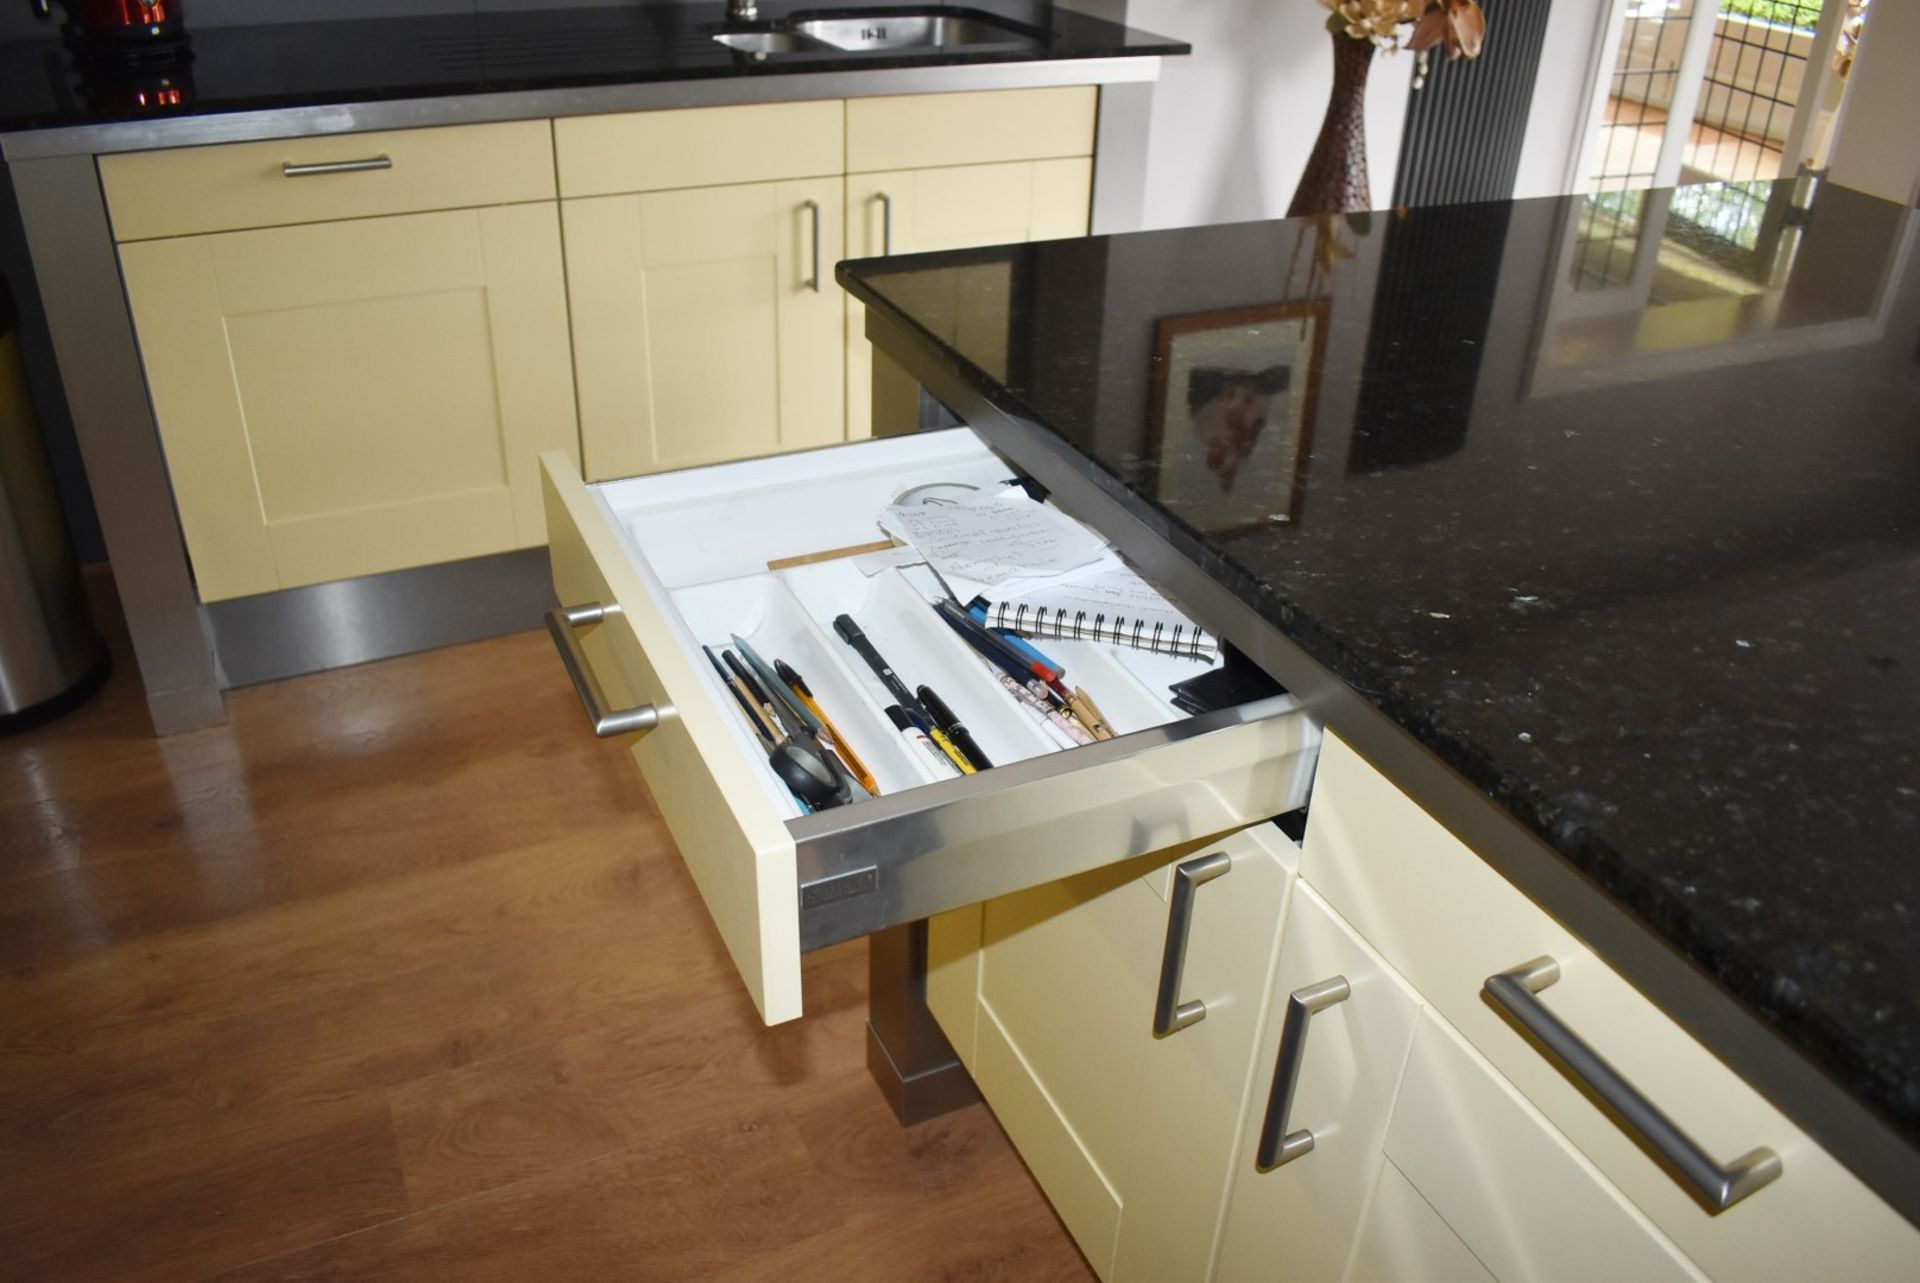 1 x SieMatic Contemporary Fitted Kitchen With Appliances - Features Shaker Style Doors, Central - Image 32 of 96